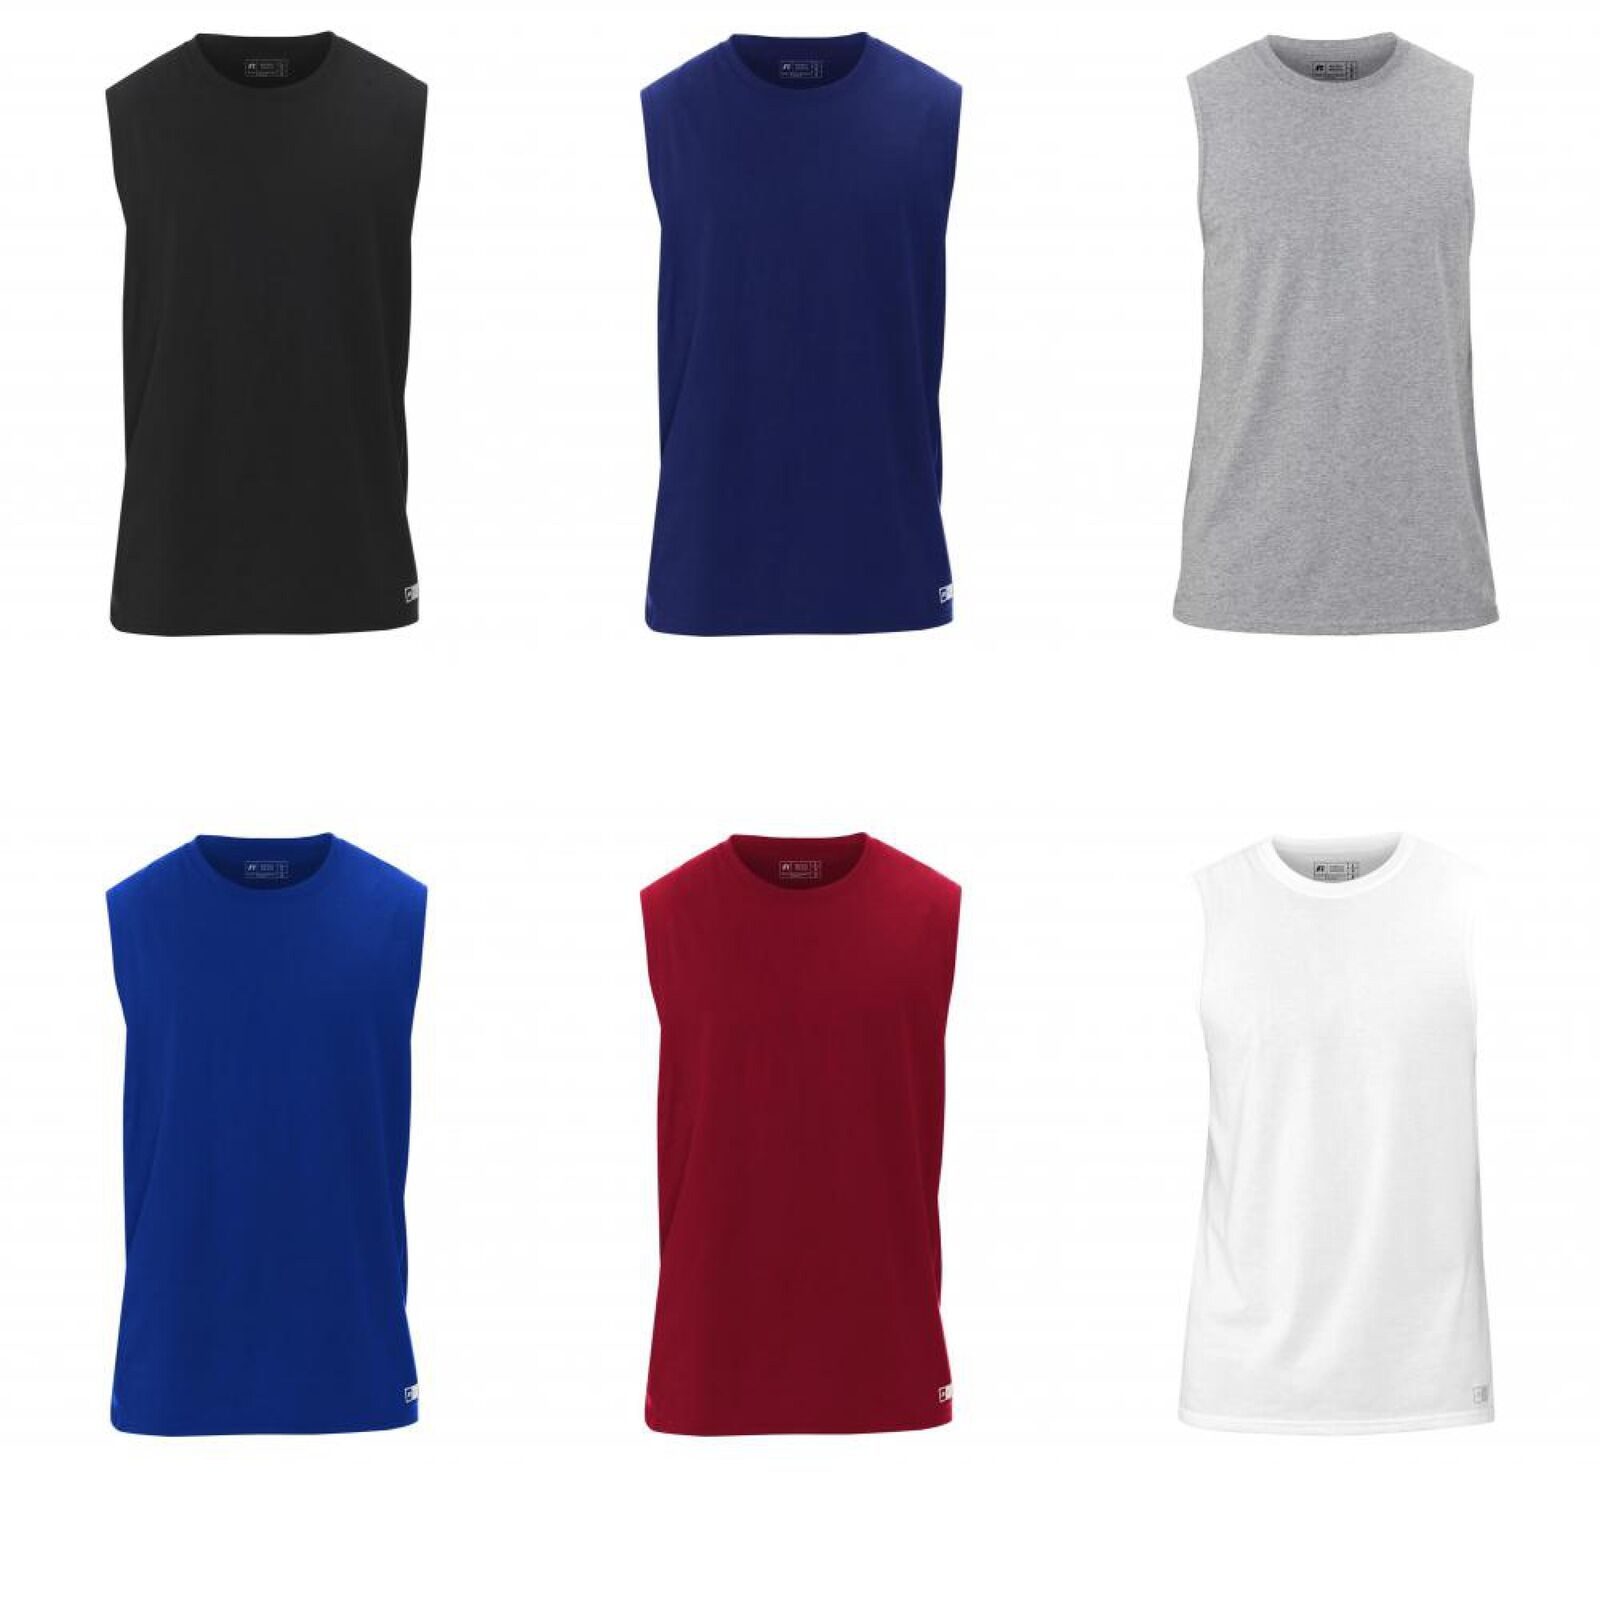 935d09354628ee Russell Athletic Men s Essential Jersey Sleeveless Muscle T-Shirt ...